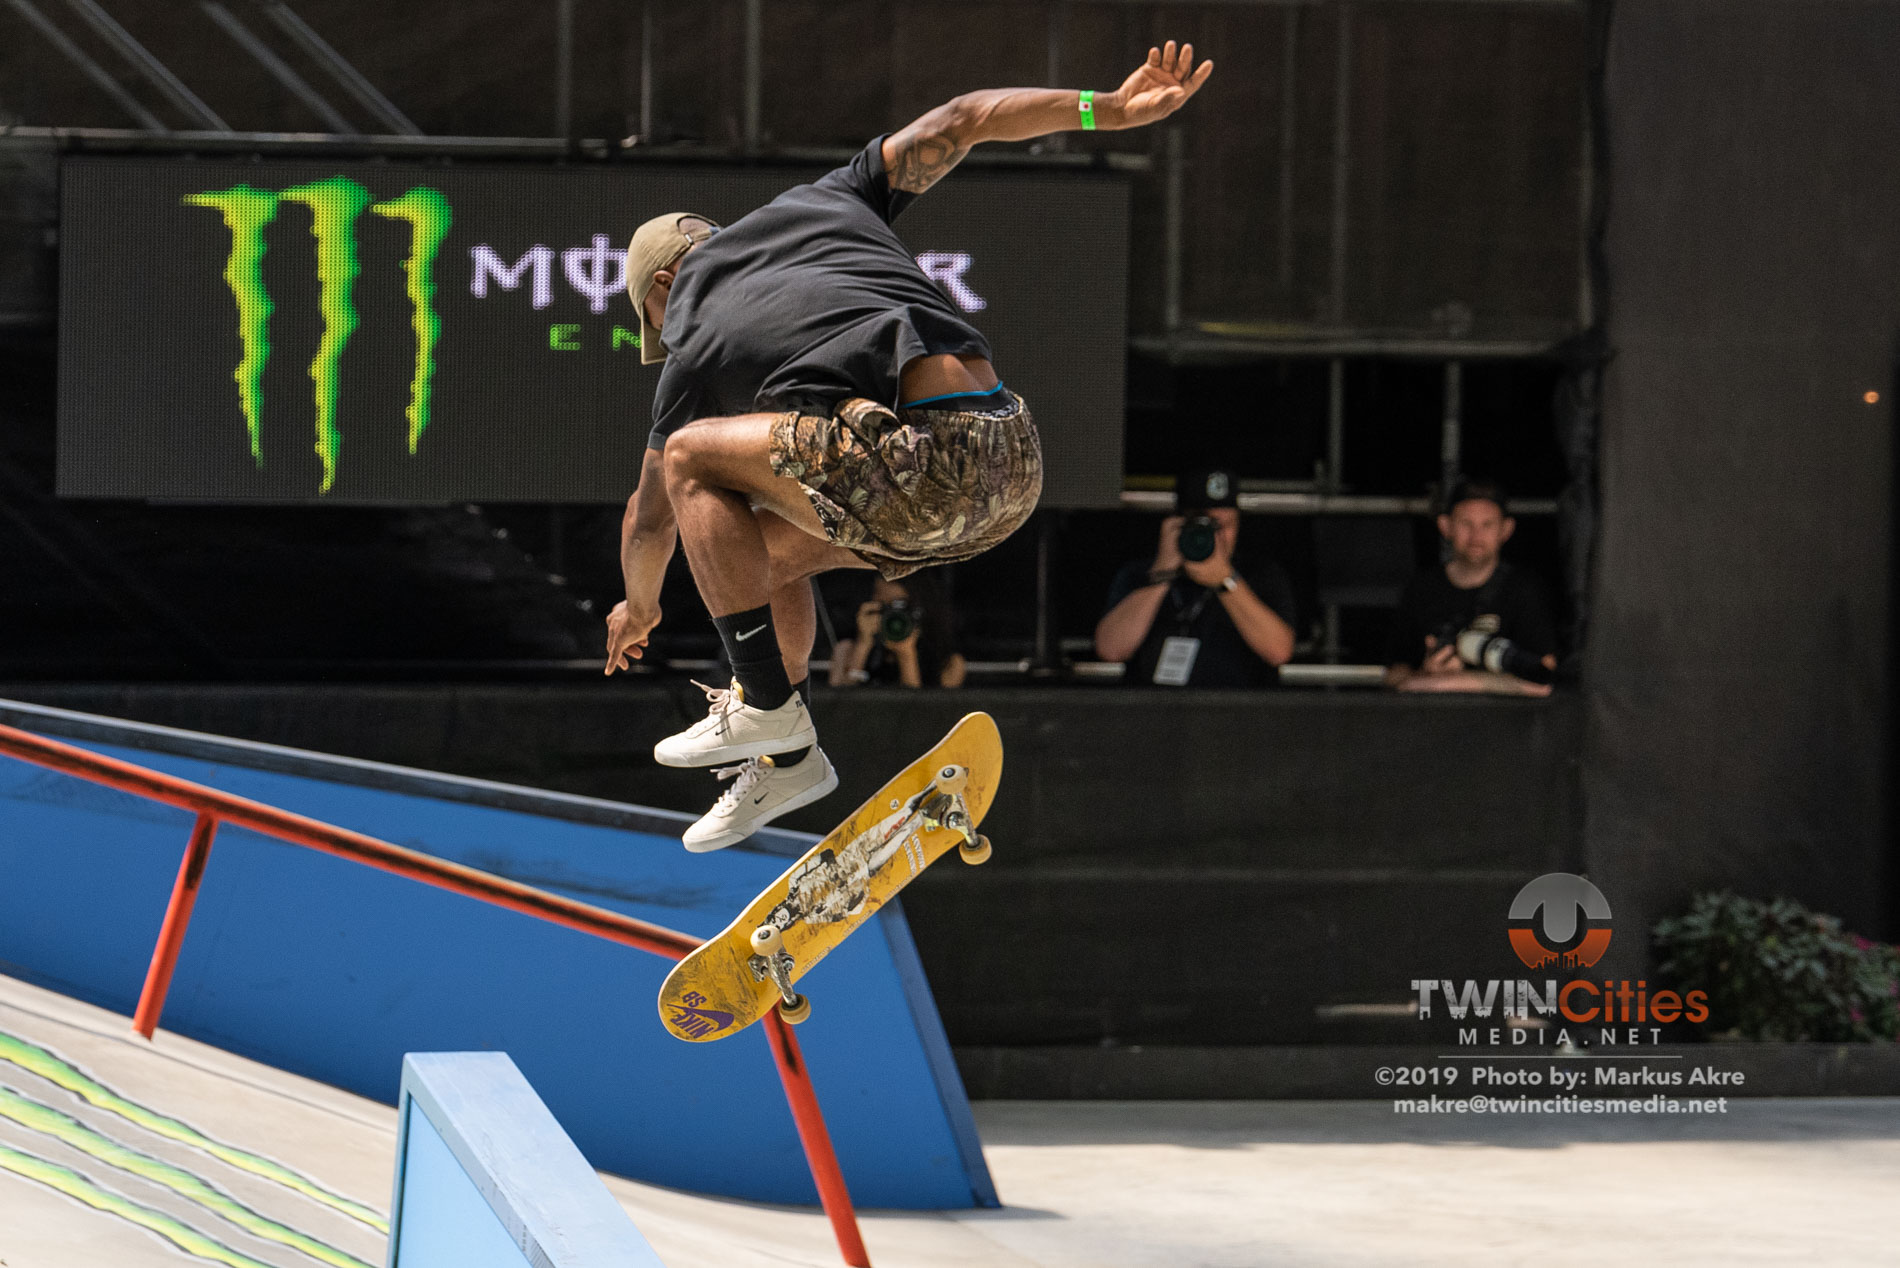 2019-X-Games-Day-4-Skateboard-Street-Best-Trick-8